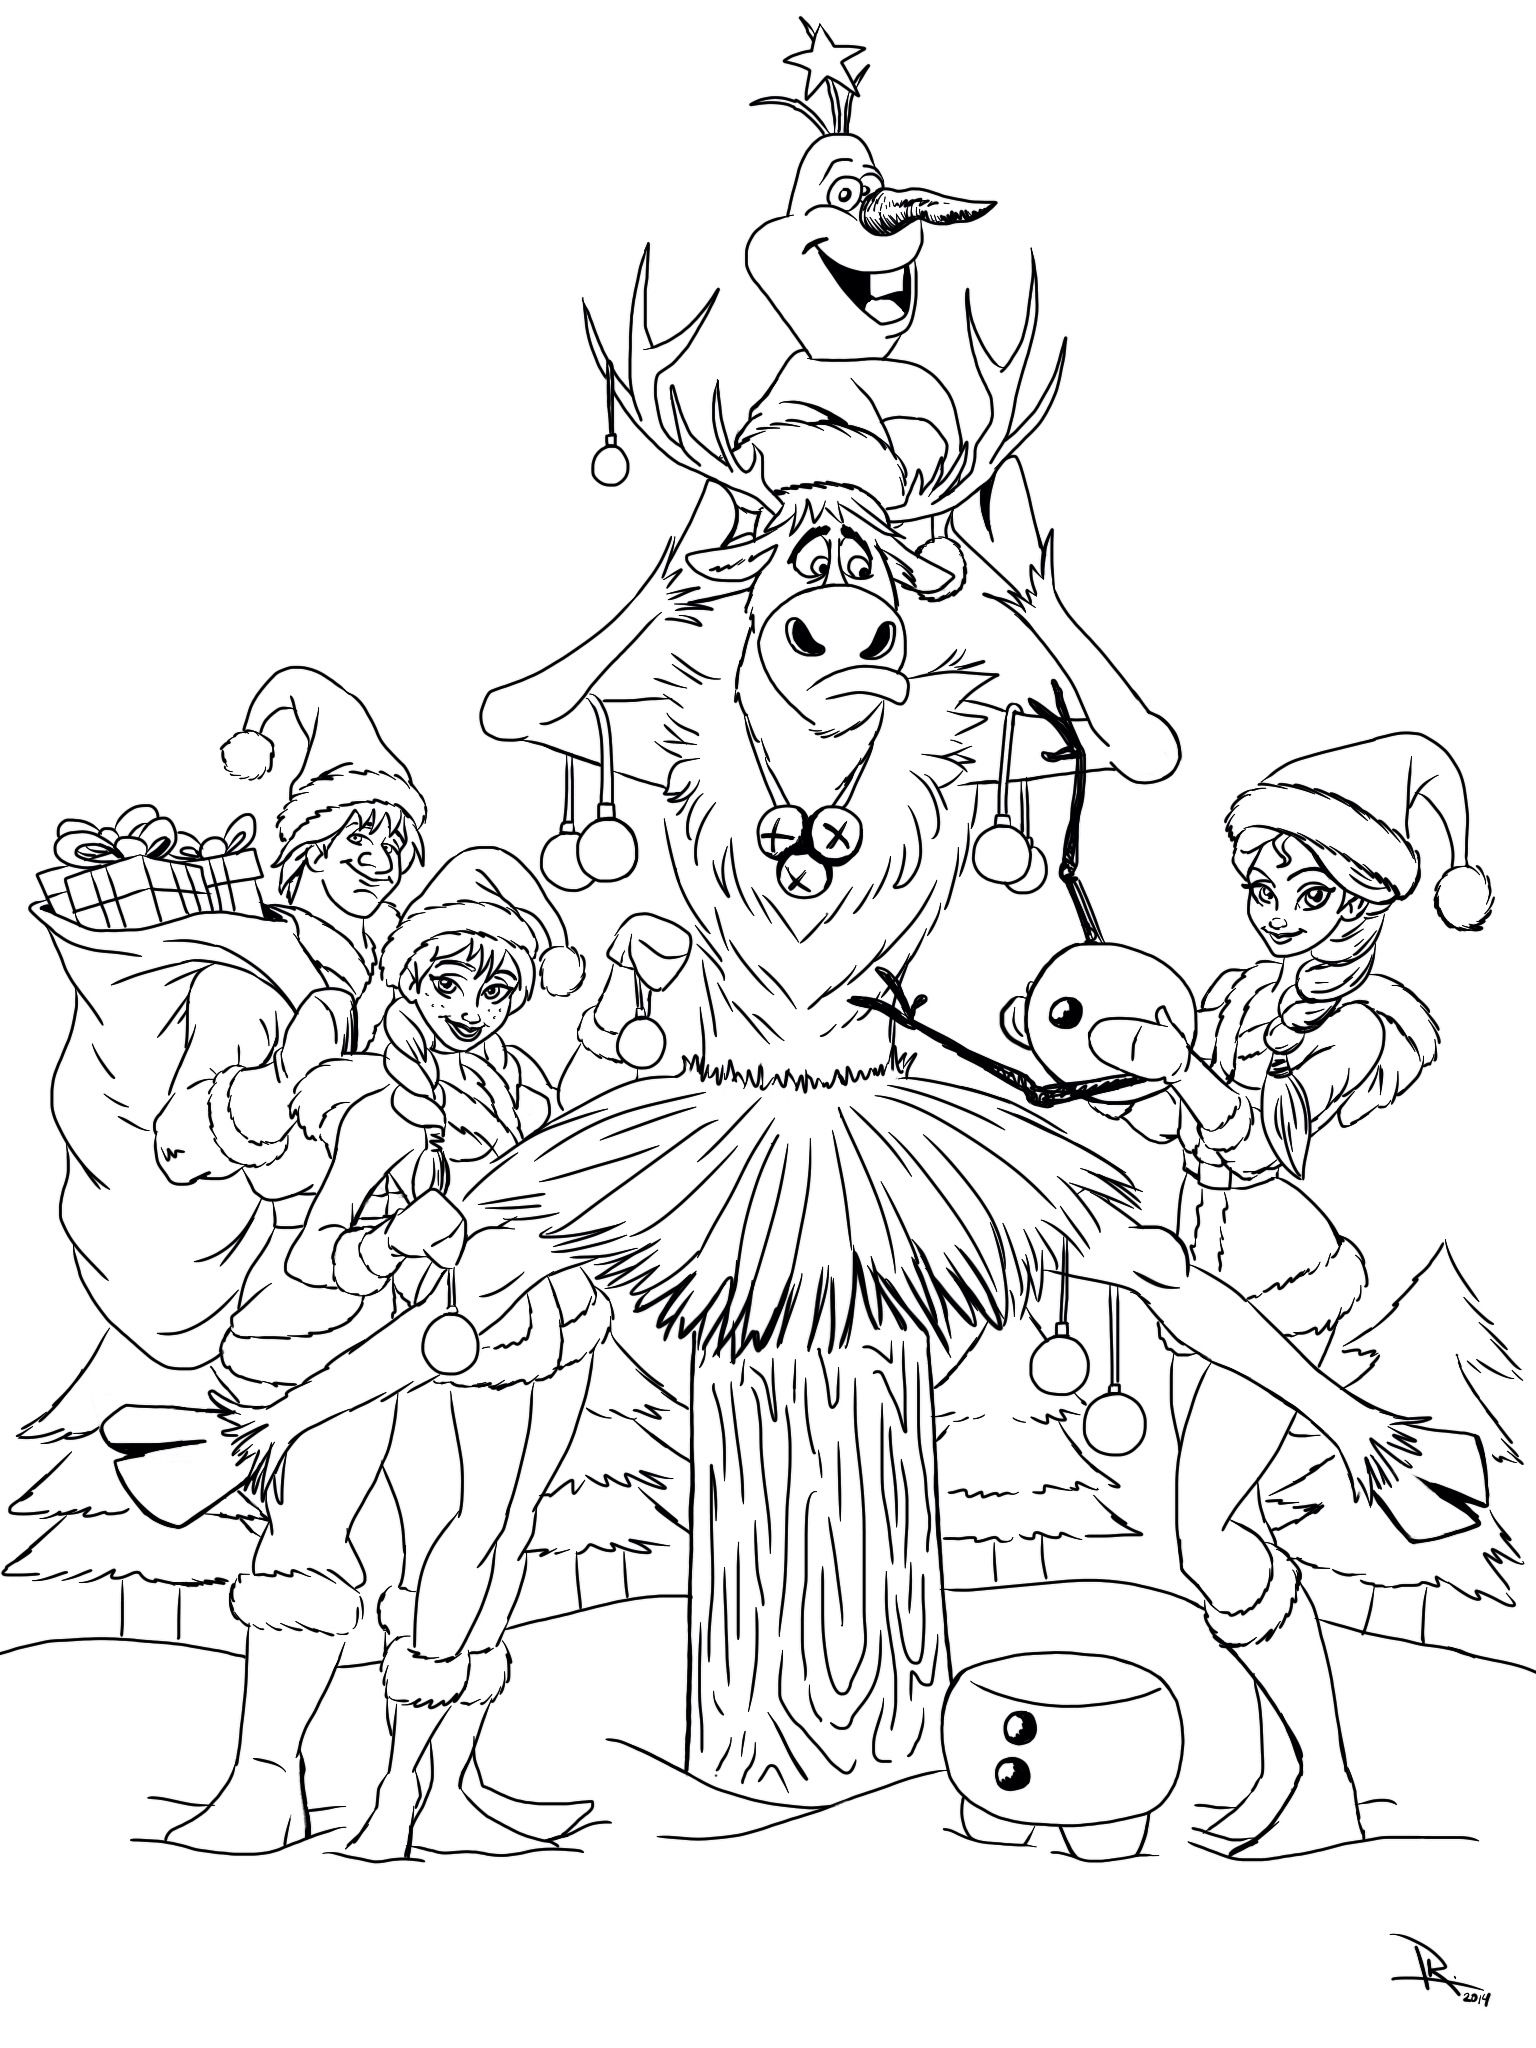 Frozen Halloween Printable Coloring Pages | Coloring Pages | Pinterest